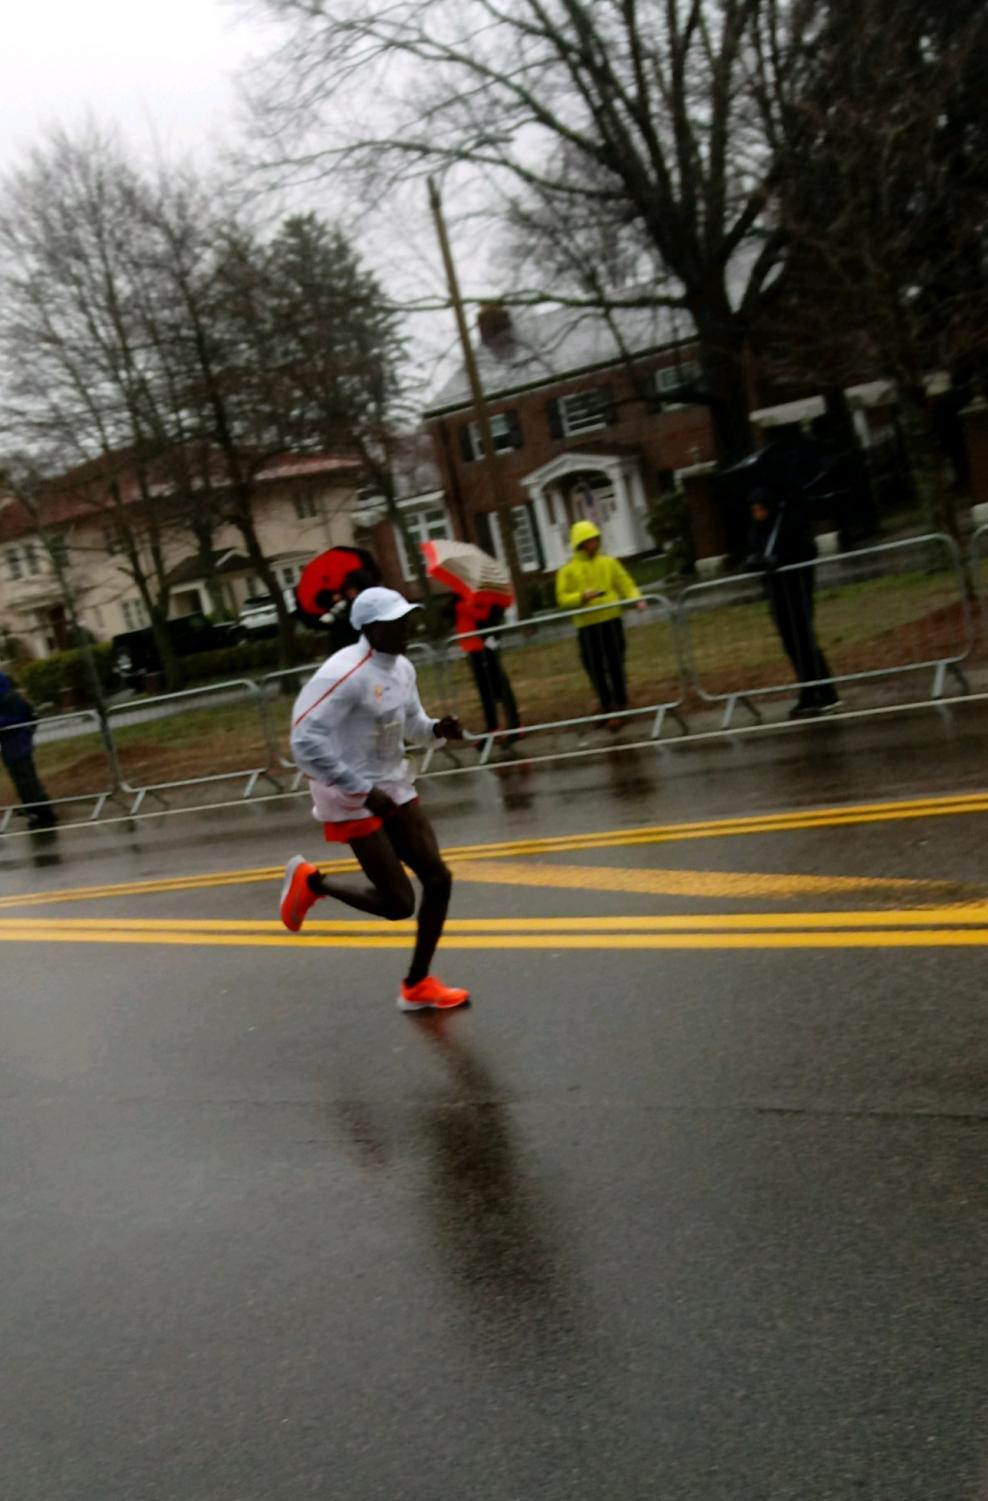 Men's second place finisher, Geoffrey Kirui of Kenya, led throughout most of the race before being overtaken.